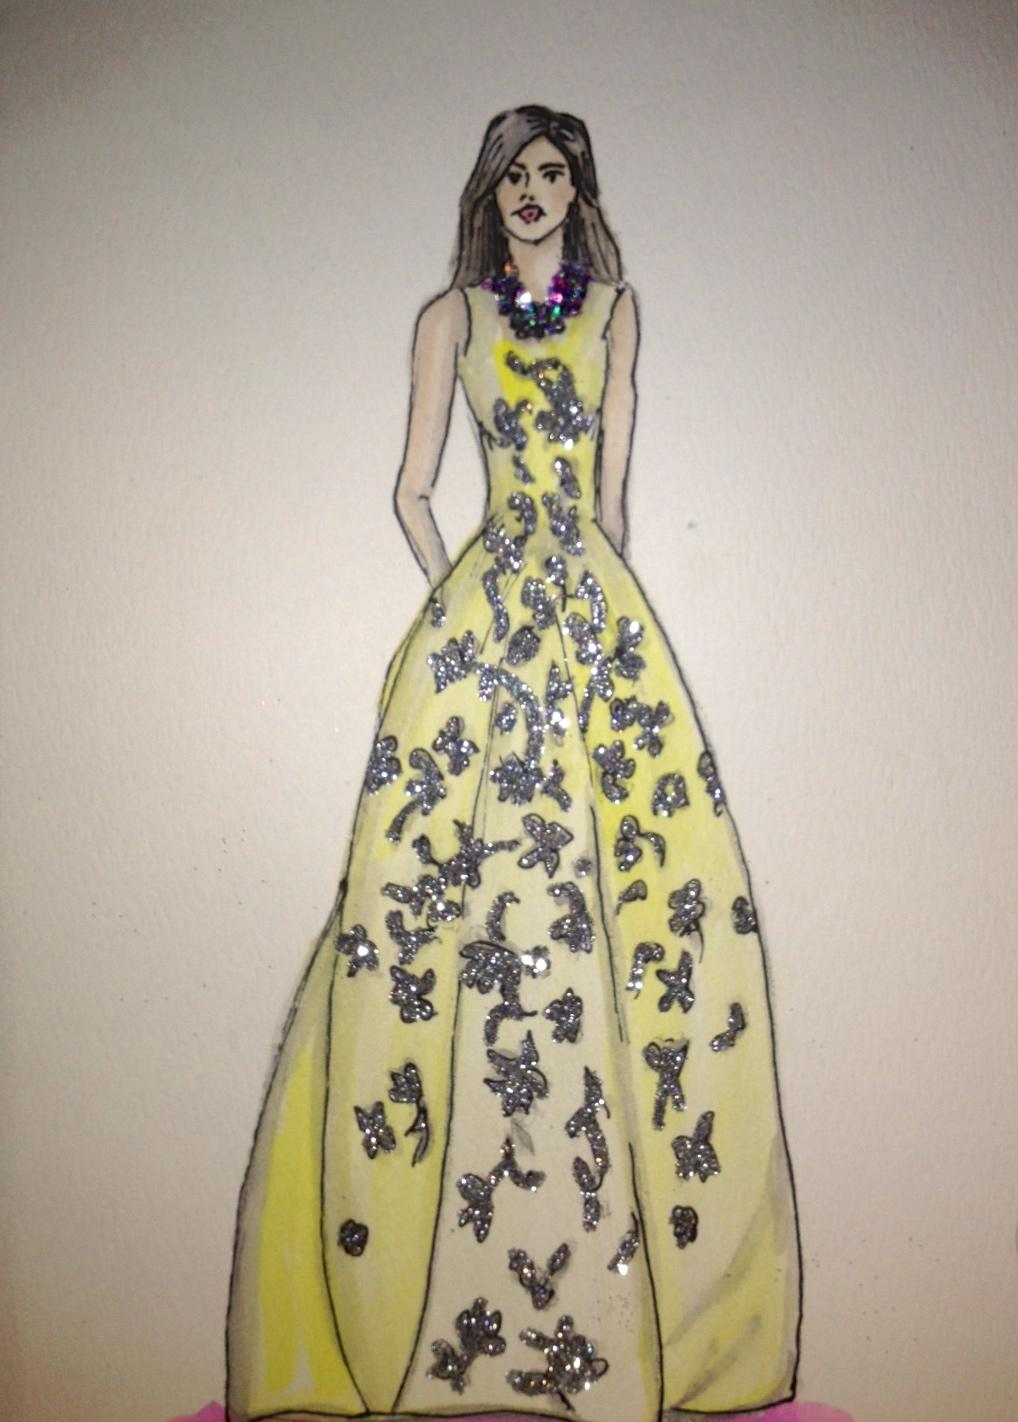 FINAL ~ EMBELLISHED ~ WATERCOLOR ~ SKETCHES ~ Feminine Ways - image 19 - student project